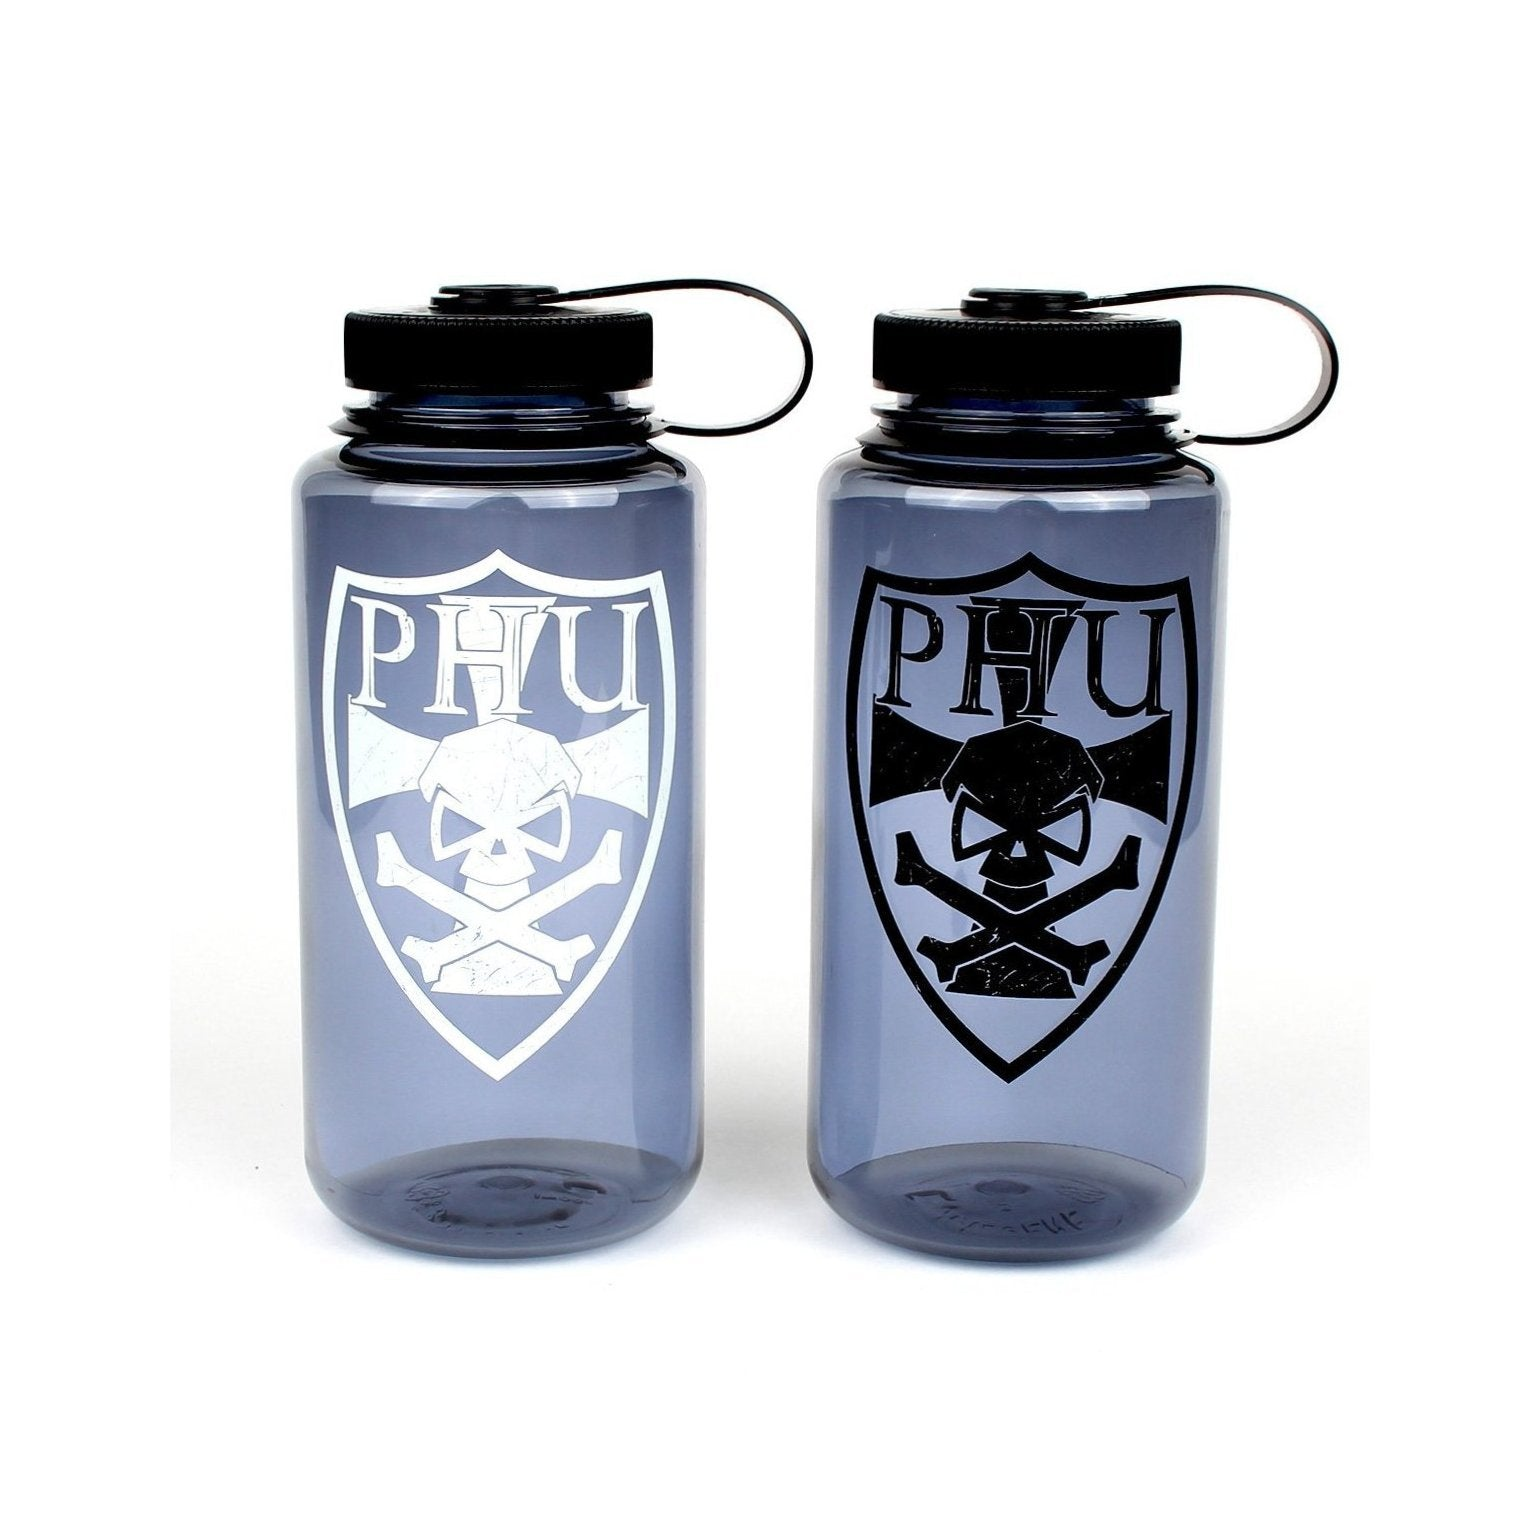 Nalgene Bottle with Templar Shield - Pipe Hitters Union